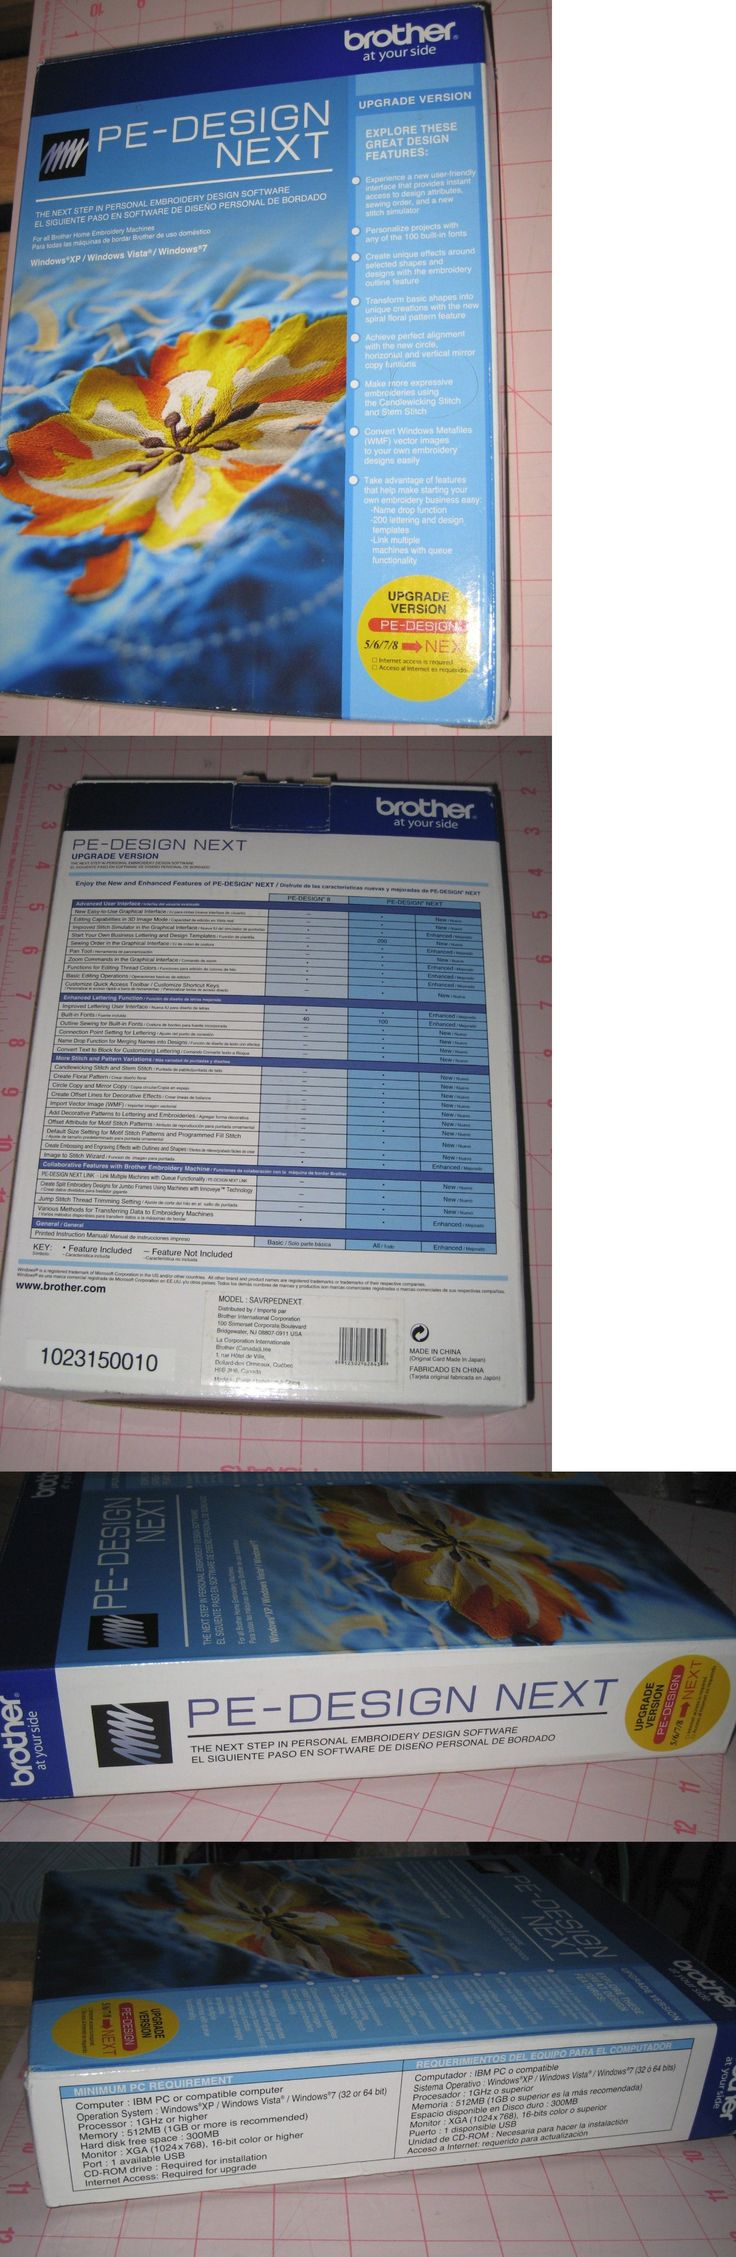 Digitizing Software 71197: Brother Pe-Design 5 6 7 8 To Pe Design Next Upgrade Software New Free Ship! -> BUY IT NOW ONLY: $199 on eBay!